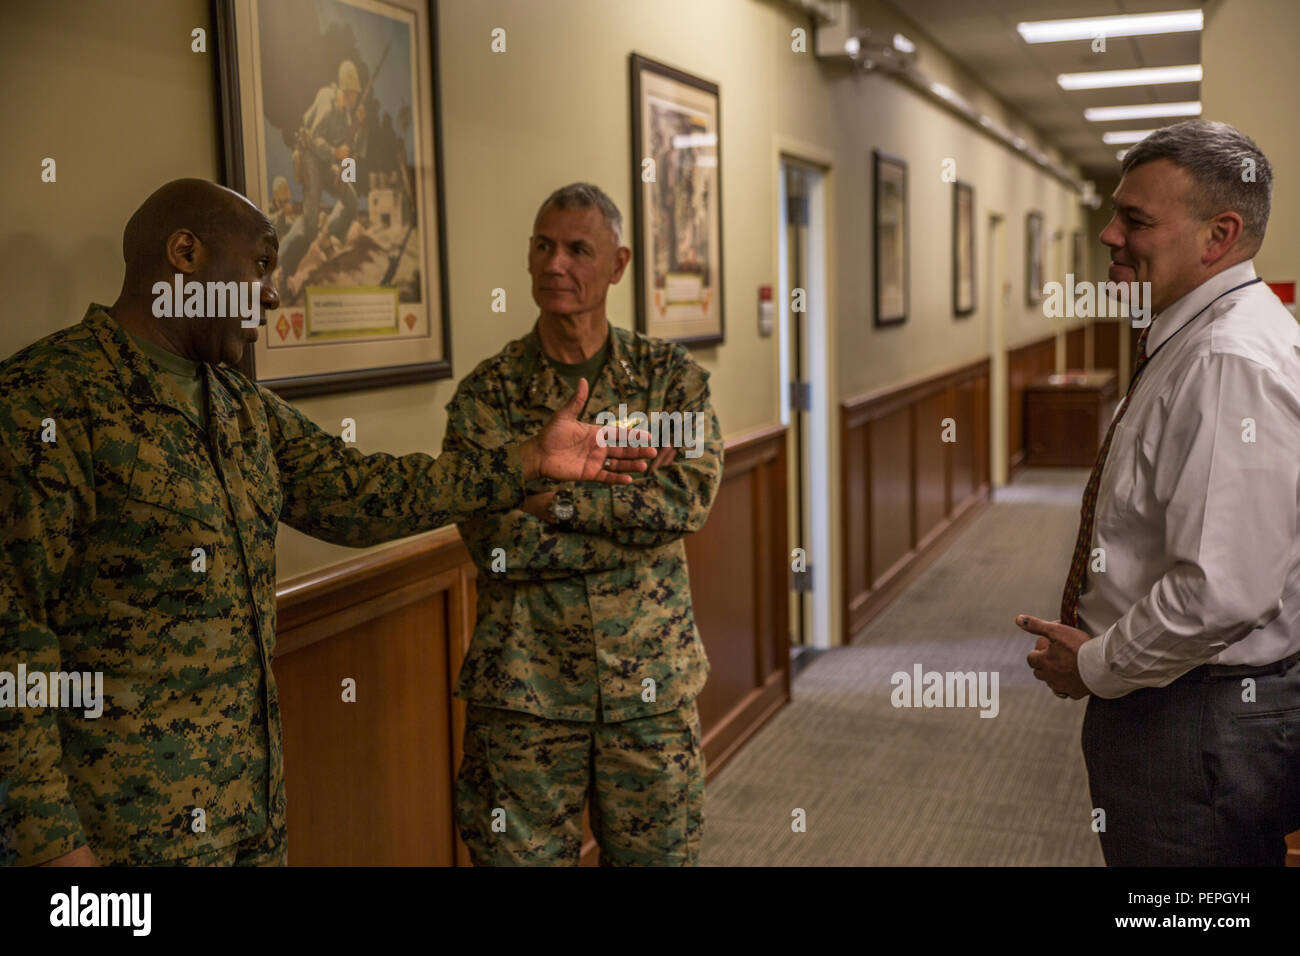 Sergeant Major of the Marine Corps, Sgt. Maj. Ronald L. Green (left), greets Lt. Gen. Rex C. McMillian (center), Commander of Marine Forces Reserve and Marine Forces North and Mr. Gregg T. Habel (right), Executive Director of MARFORRES and Marine Forces North, upon arrival at Marine Corps Support Facility New Orleans, Jan. 20, 2016. Green's visit entails getting to know his Marines better as well as discussing the 'Protect What You've Earned' campaign by urging Marines to protect what they've earned as a Marine and continue to uphold the standards of the Corps on and off duty. - Stock Image